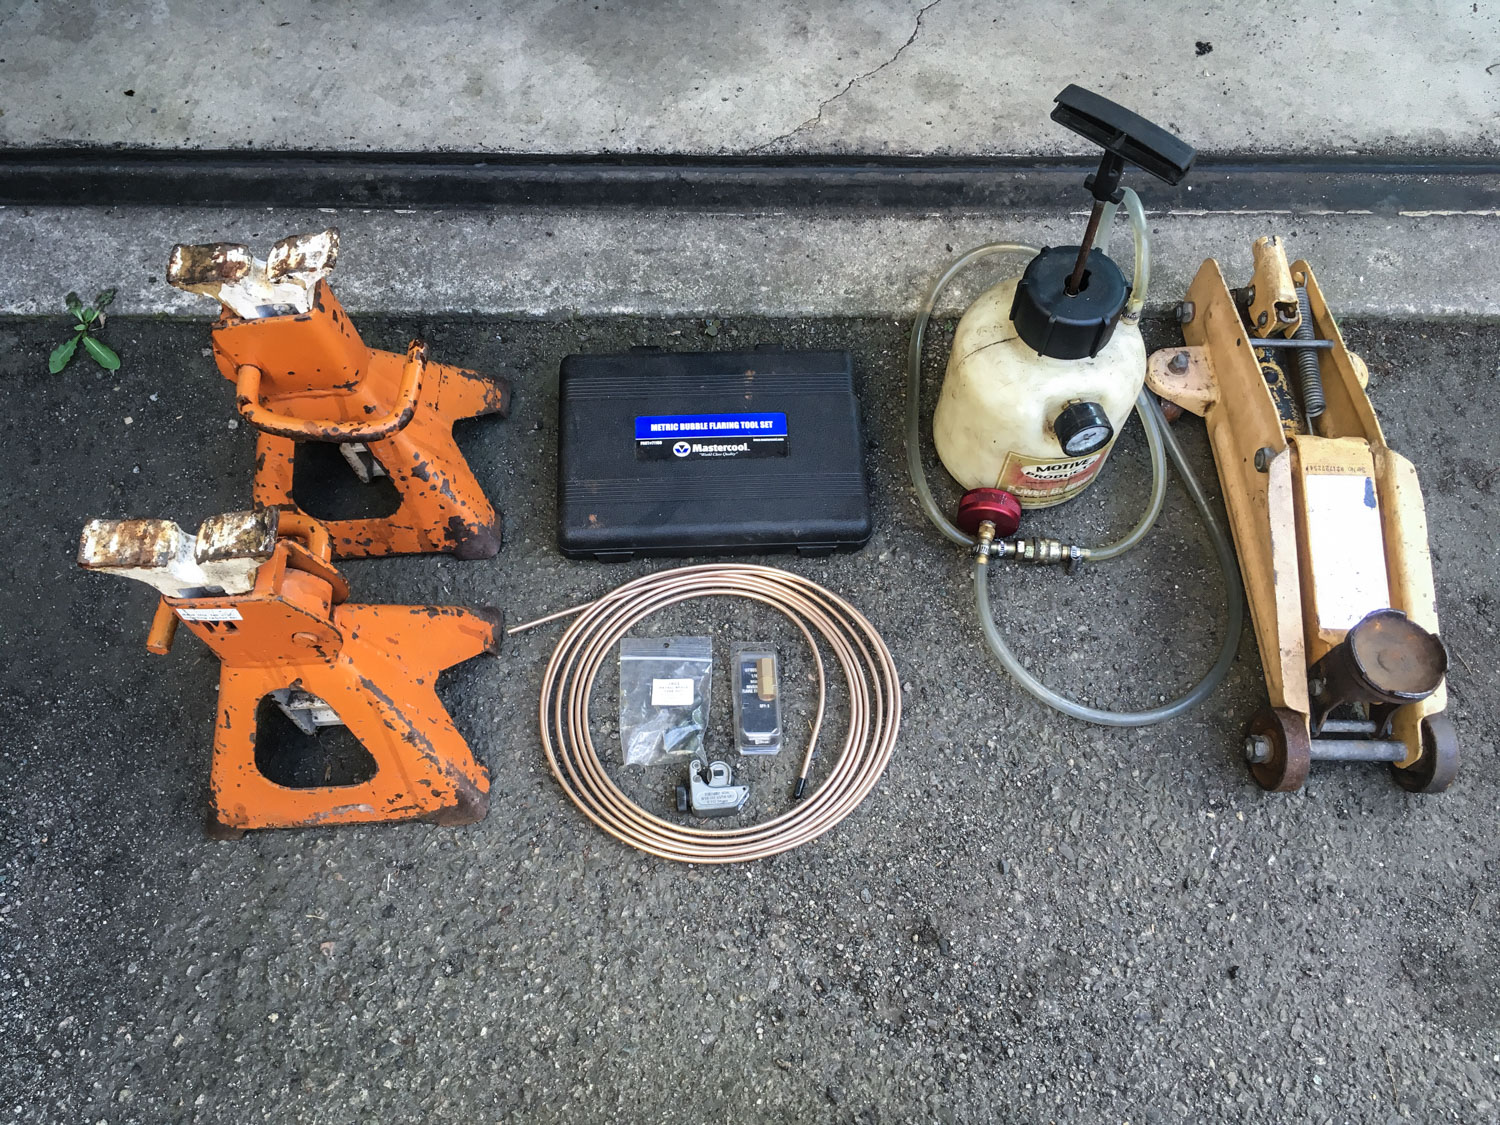 I don't routinely travel with all this. But I have. brake failure safety kit